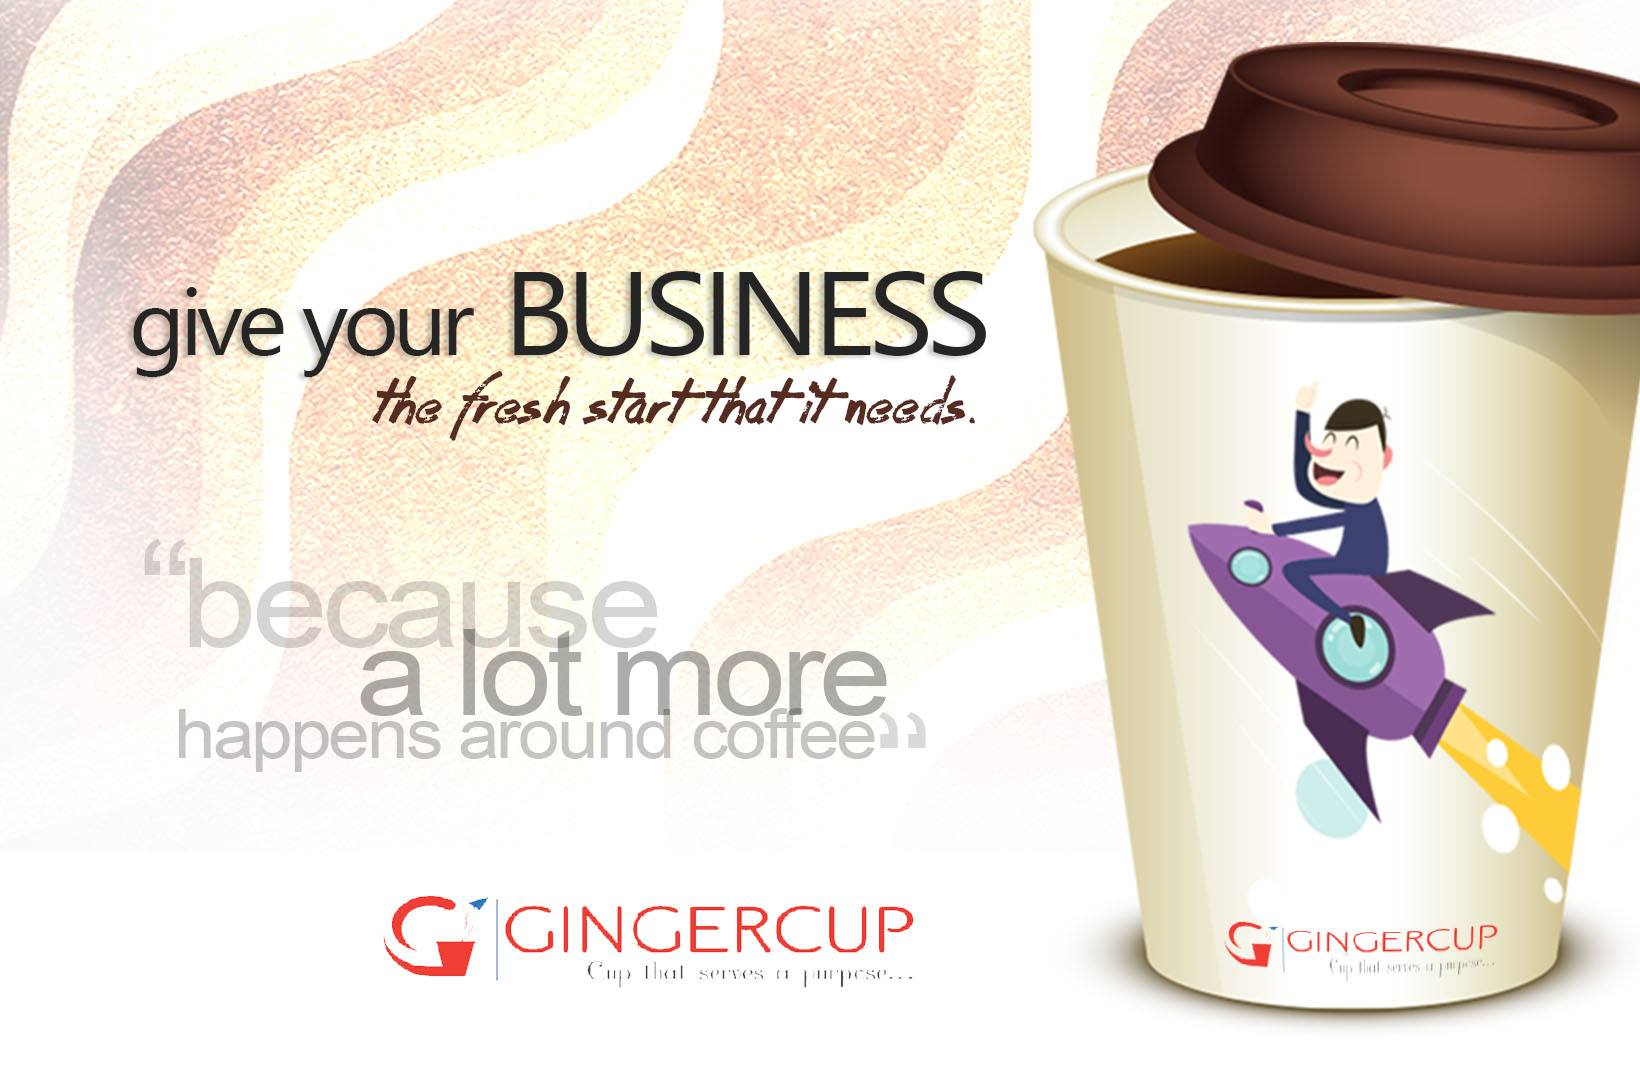 Gingercup-1